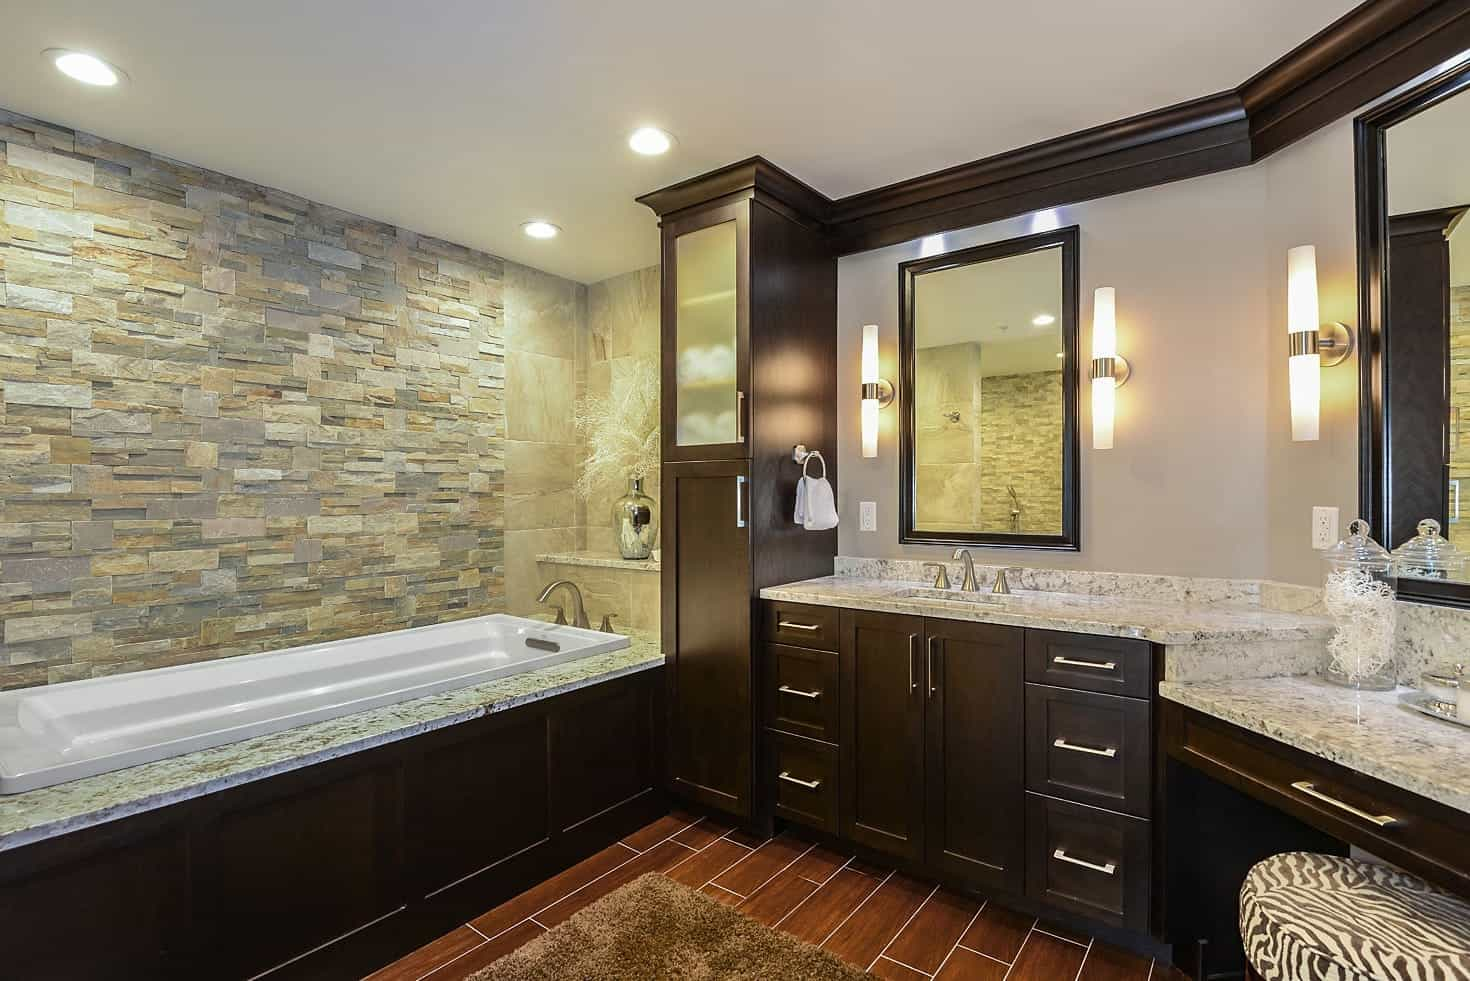 Wall Remodeling For Contemporary Master Bathroom With Spacious Vanity And Drop In Bathtub (Image 19 of 19)